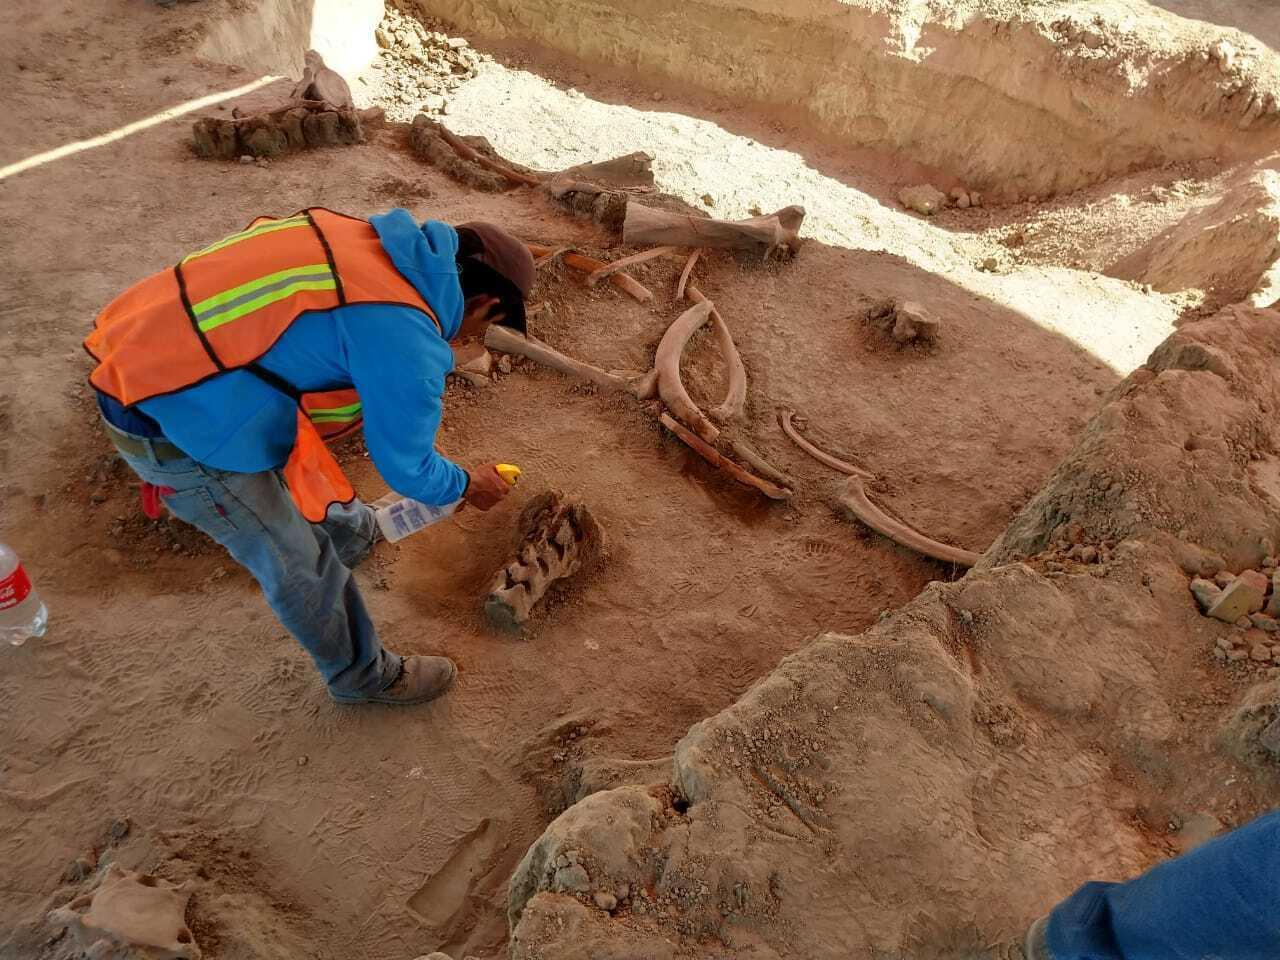 In Mexico City, experts find bones of dozens of mammoths